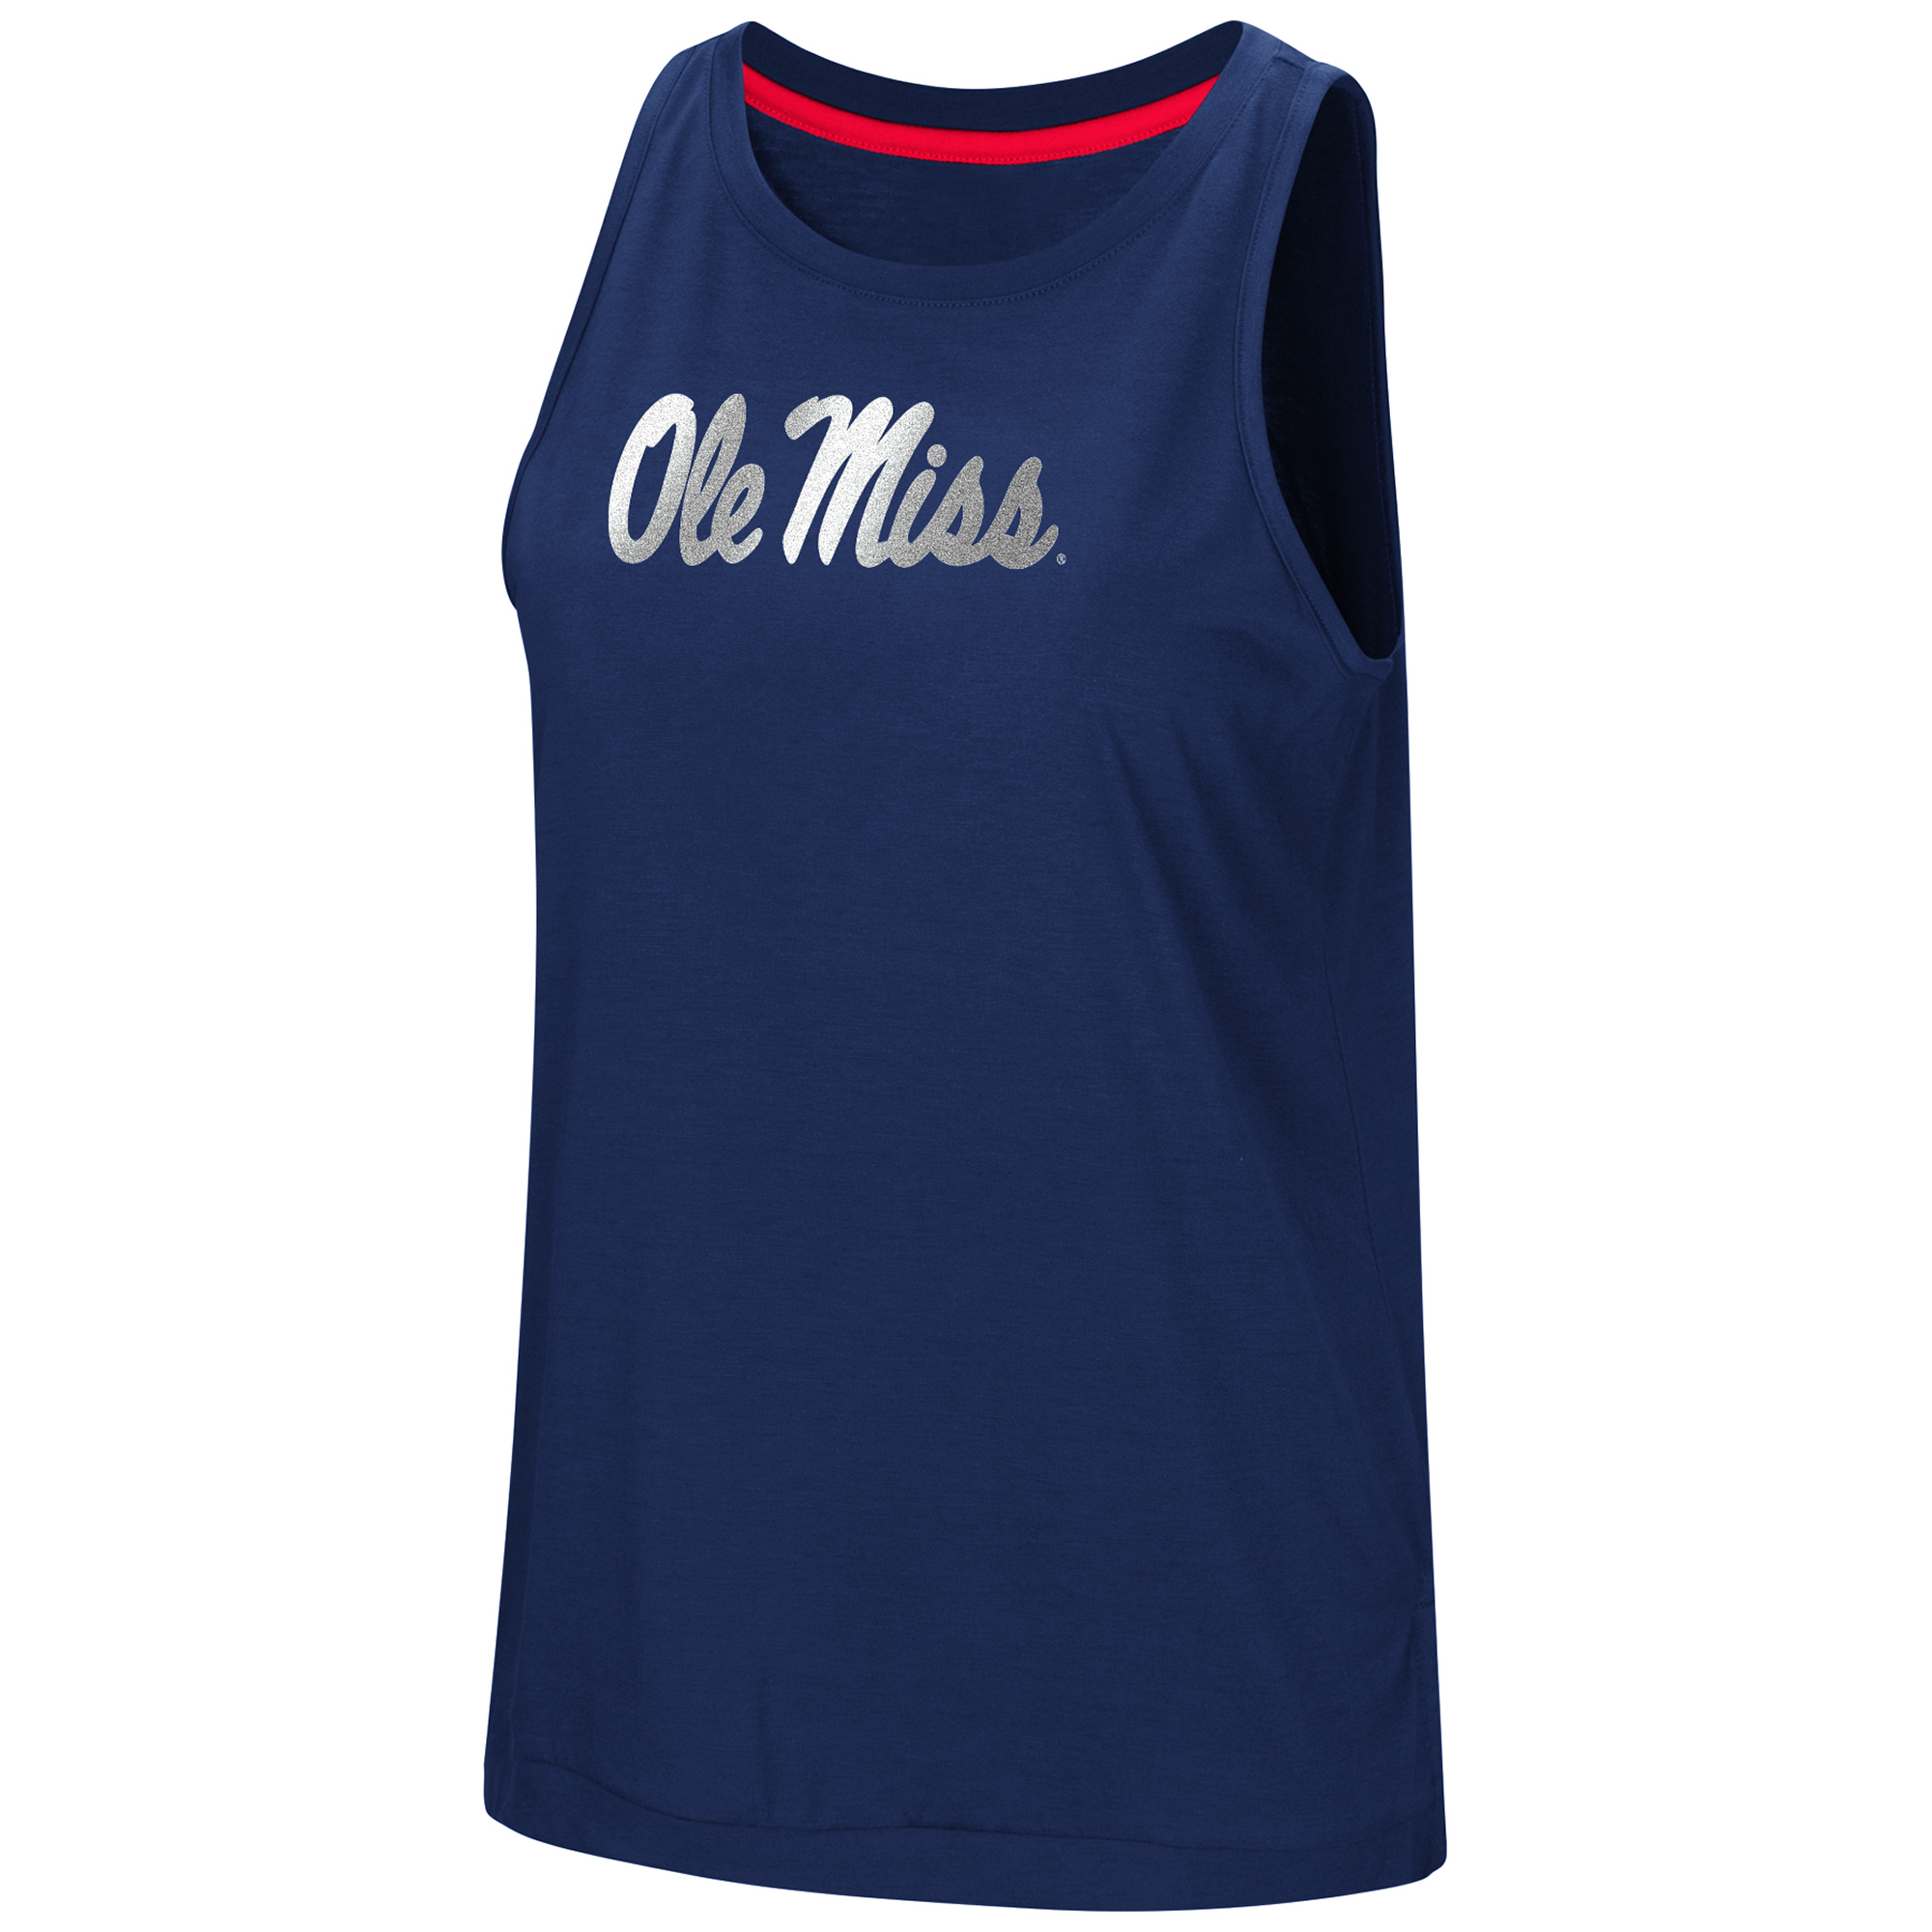 Womens Muscle Tank Top